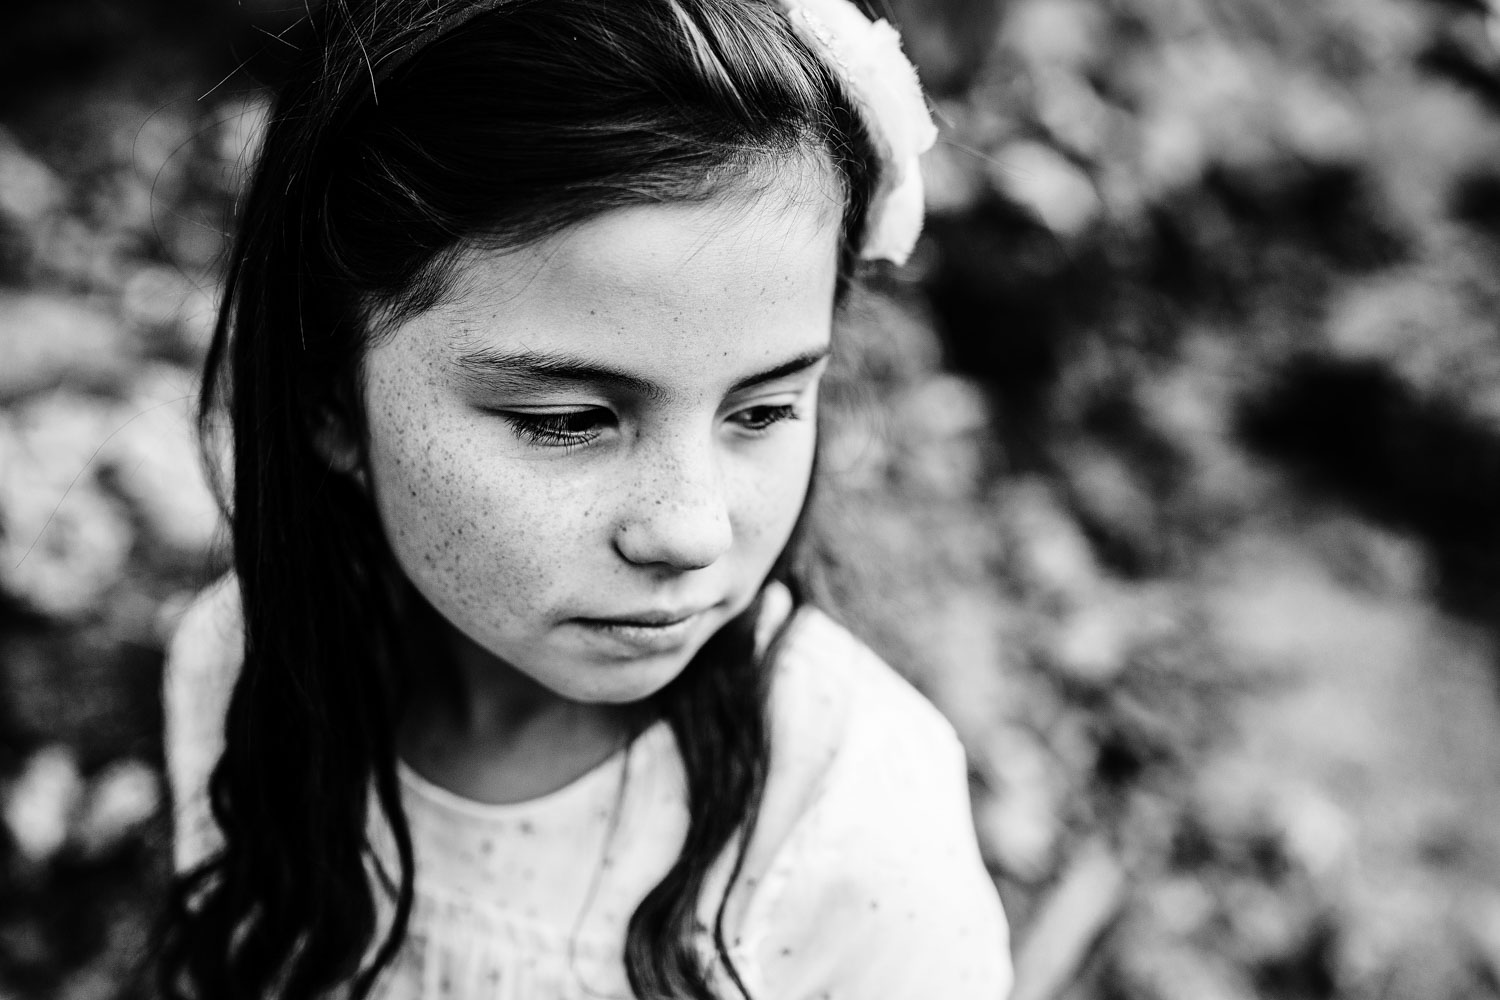 A girl has her portrait taken in a classic and timeless way with photographer Amy Wright, who is based out of Roseville, California.